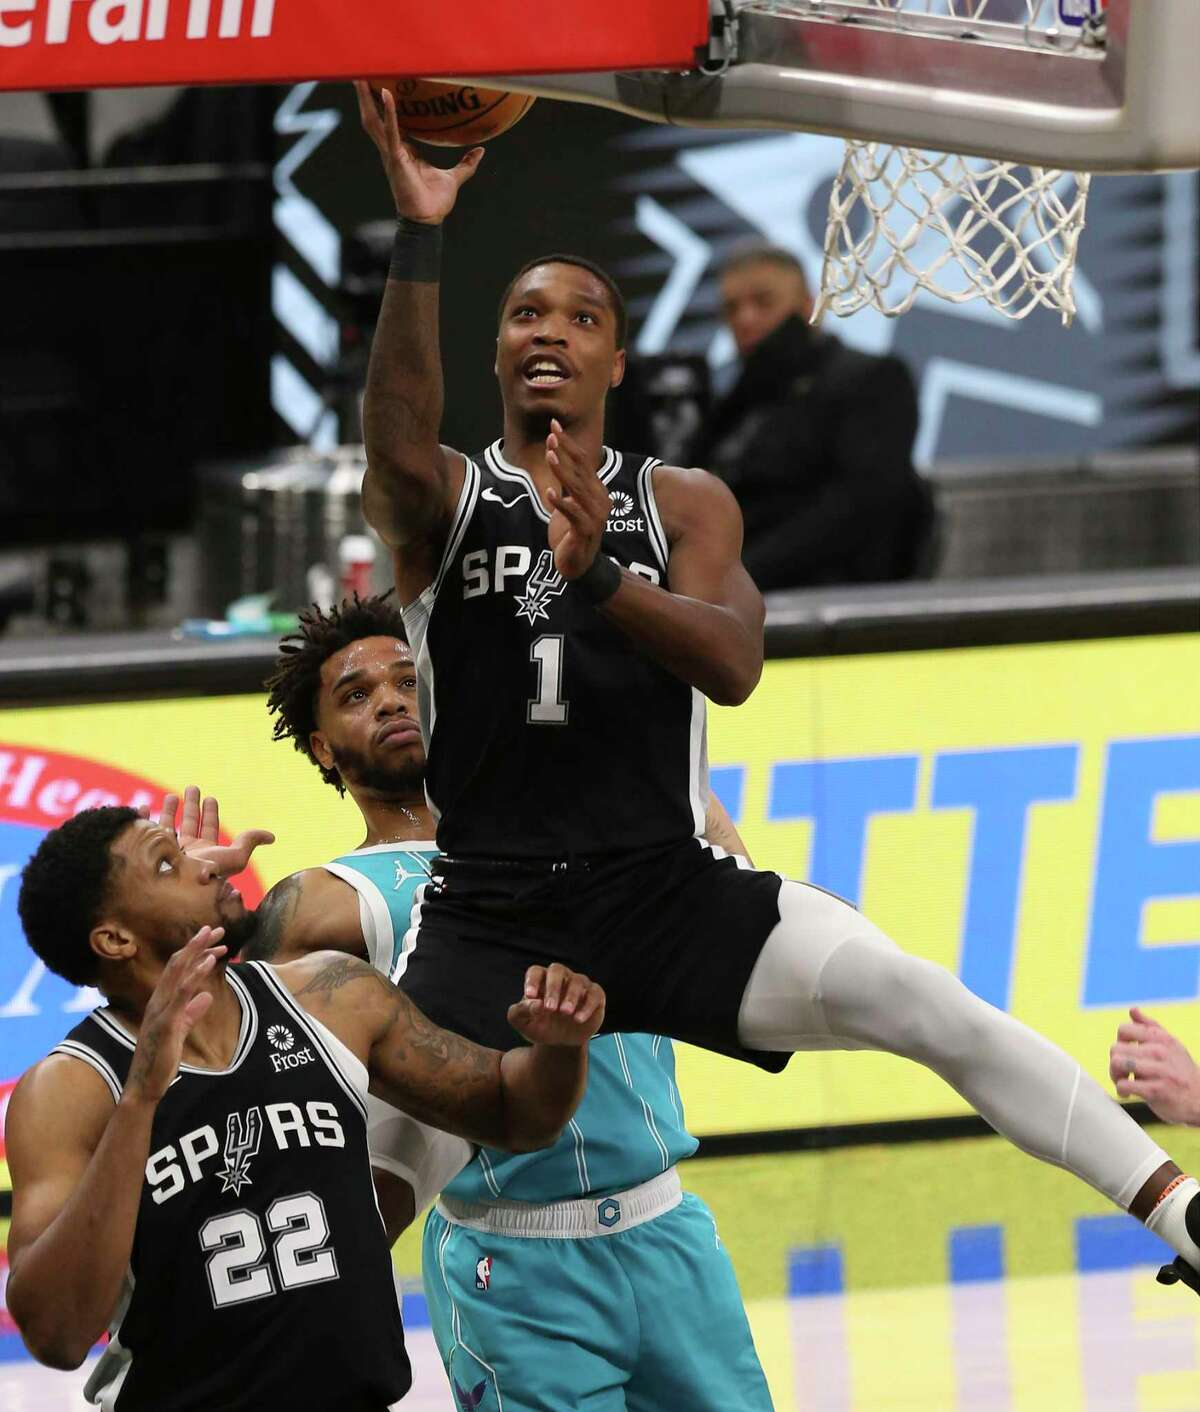 """The Spurs were happy to have Lonnie Walker IV back in the lineup Friday night. """"It gives us another 3-point shooter and somebody who can attack the bucket,"""" coach Gregg Popovich said."""